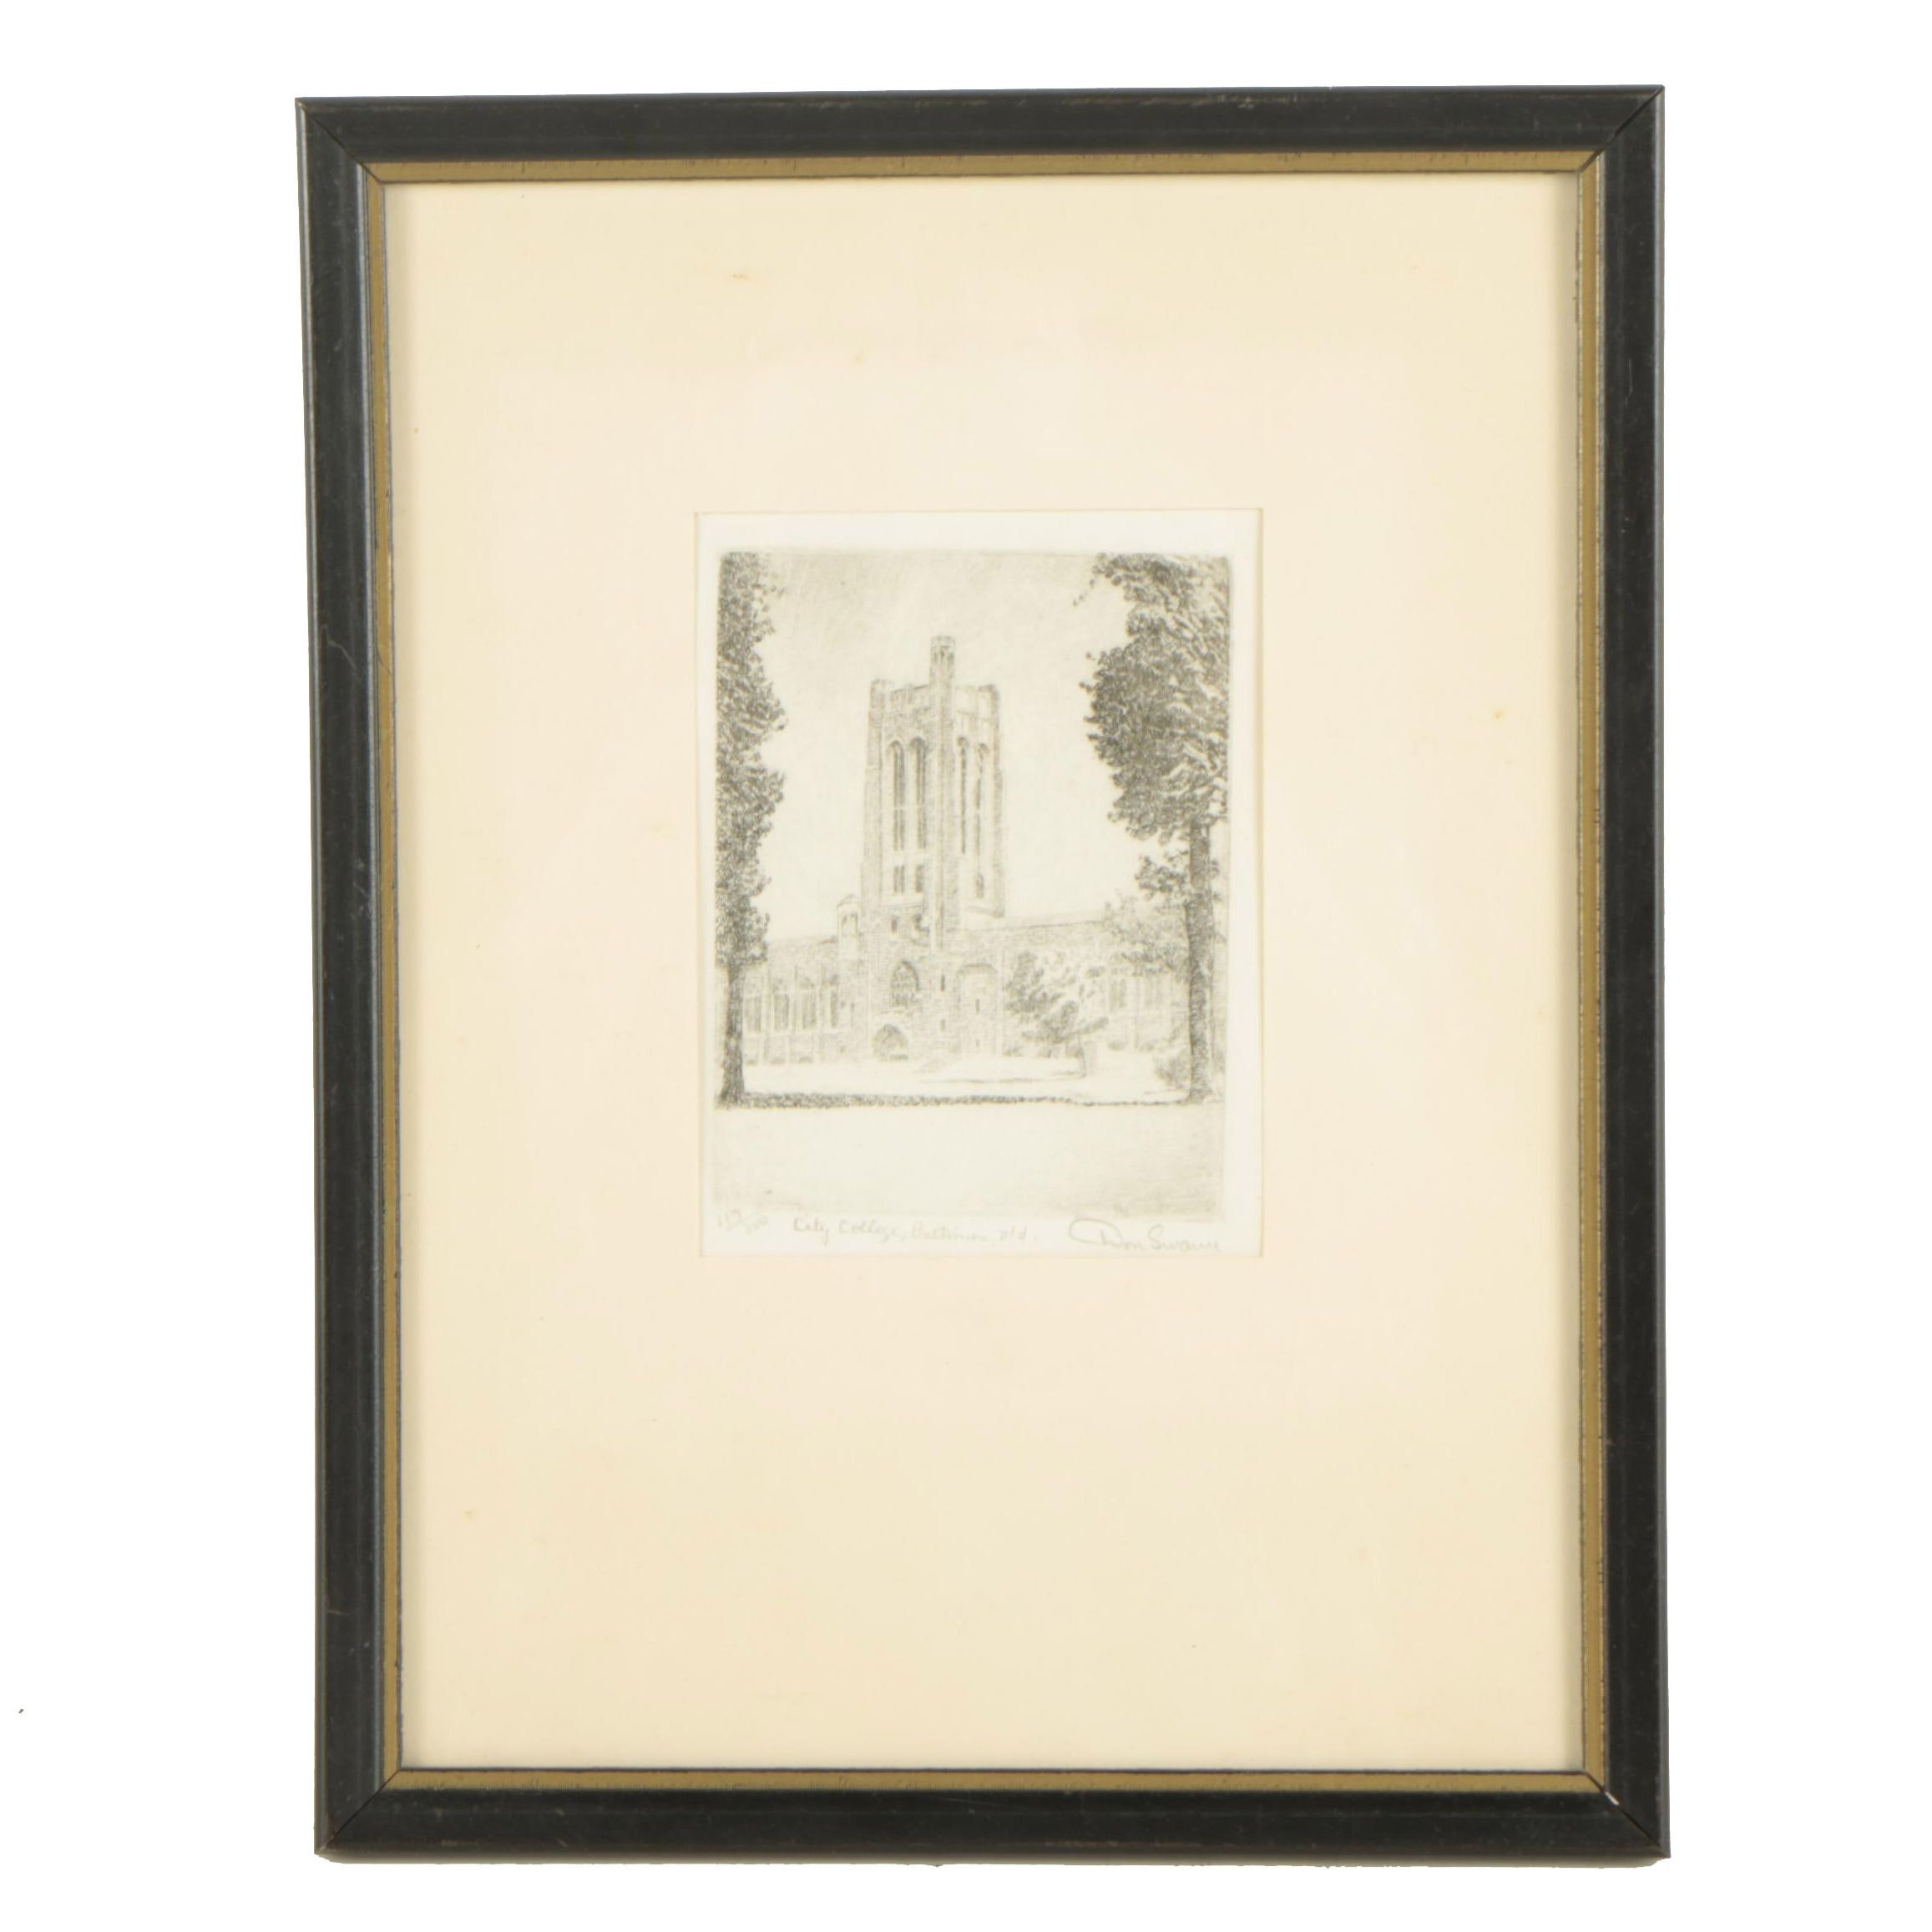 """After Don Swann 20th Century Etching """"City College, Baltimore, Md."""""""